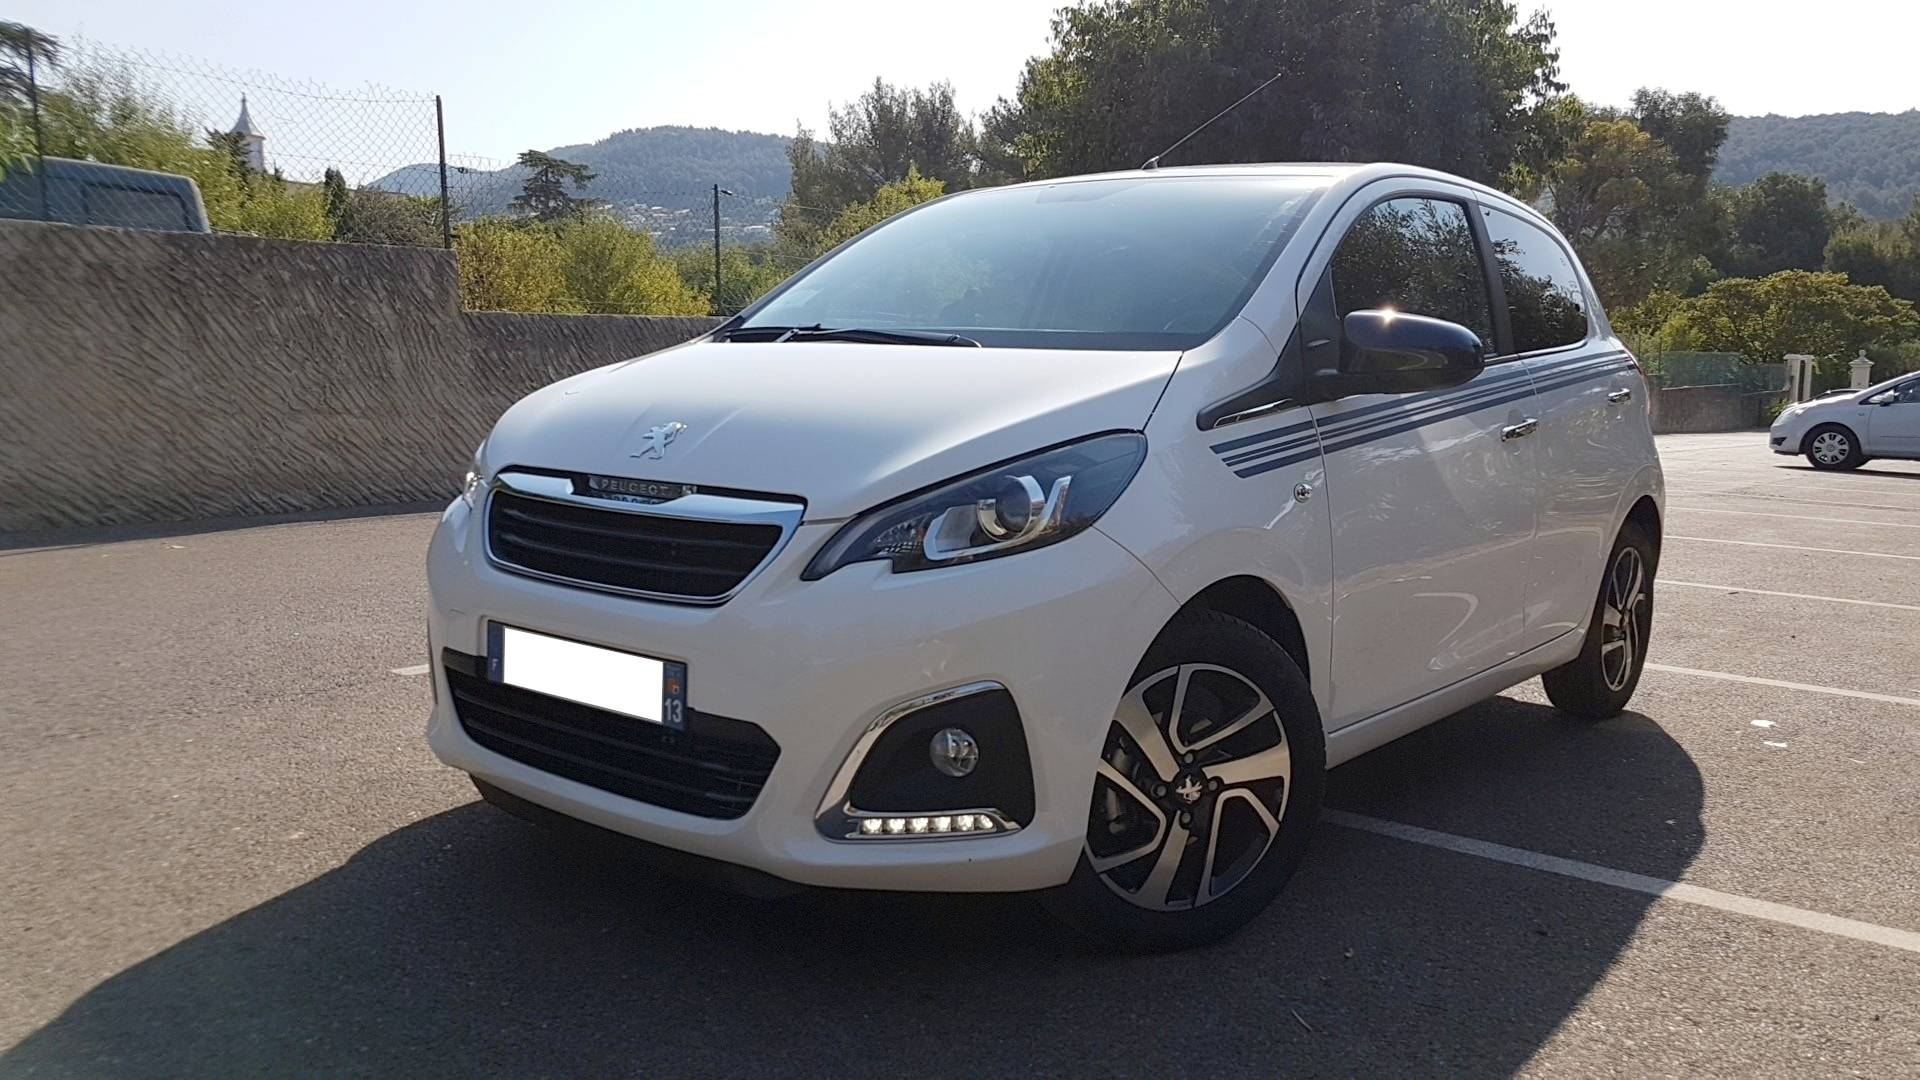 peugeot 108 d u0026 39 occasion 1 2 80 puretech collection la ciotat